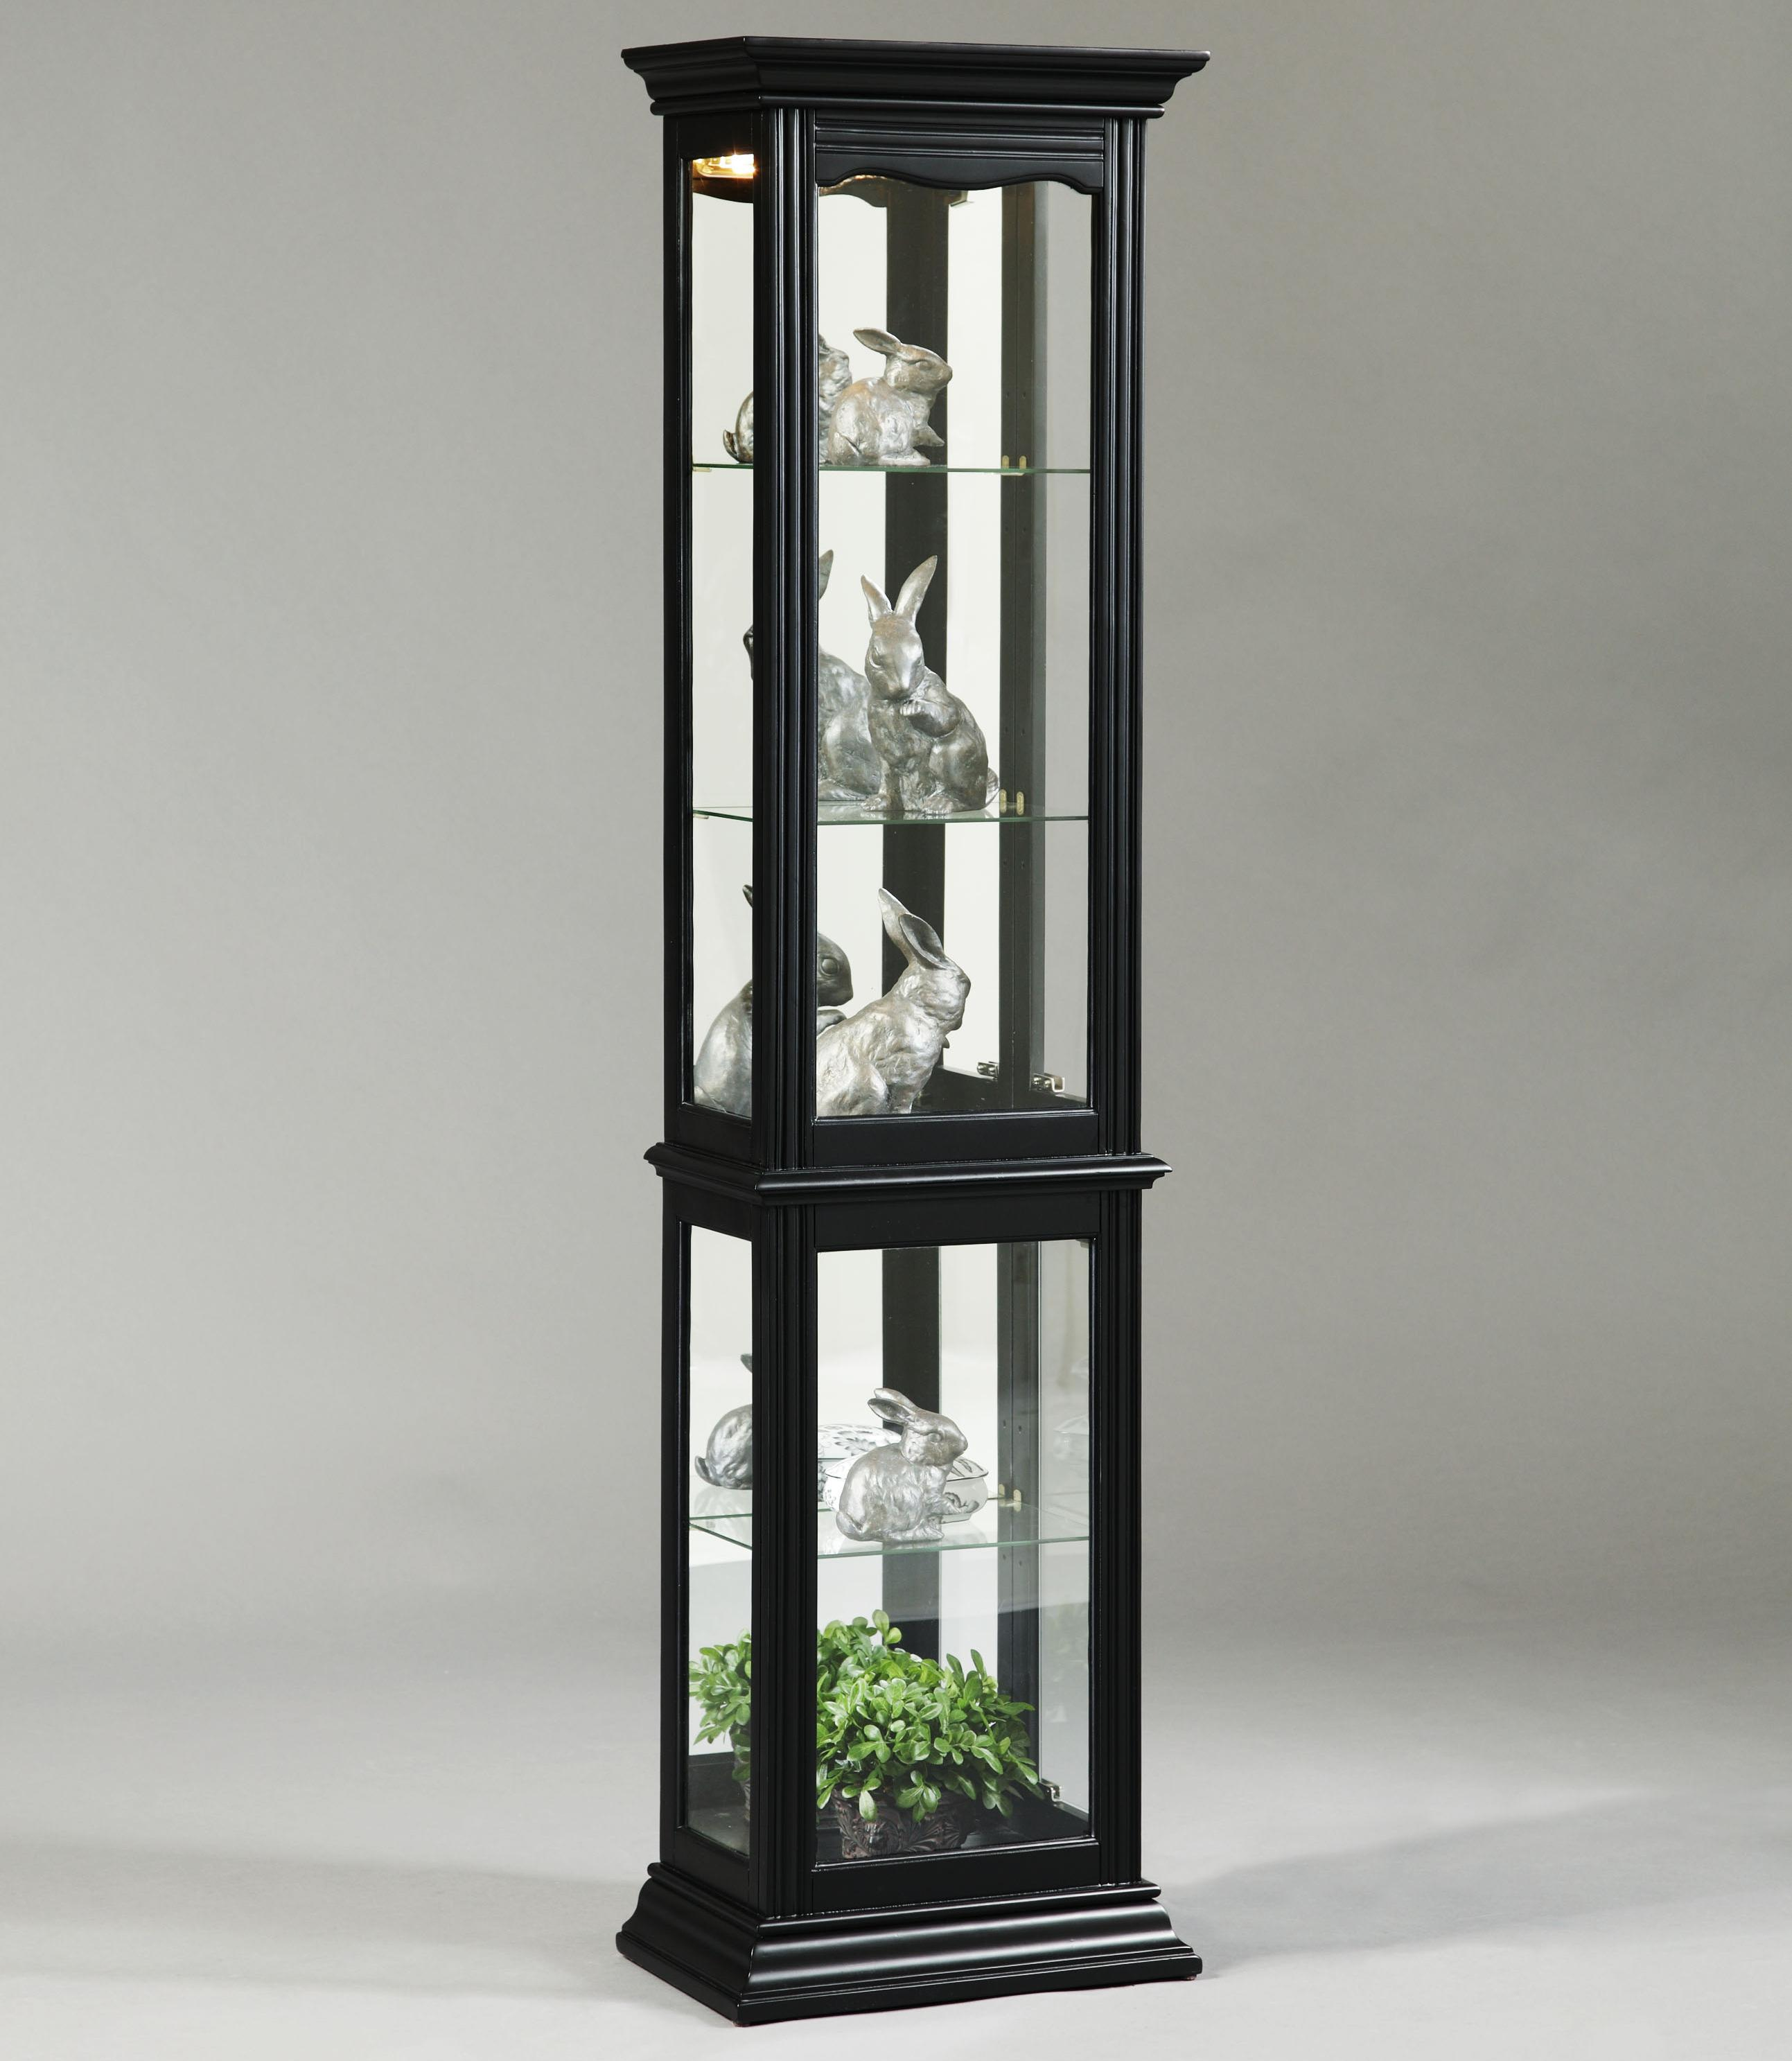 Pulaski Furniture Curios Oxford Black Curio Cabinet - Item Number: 21414